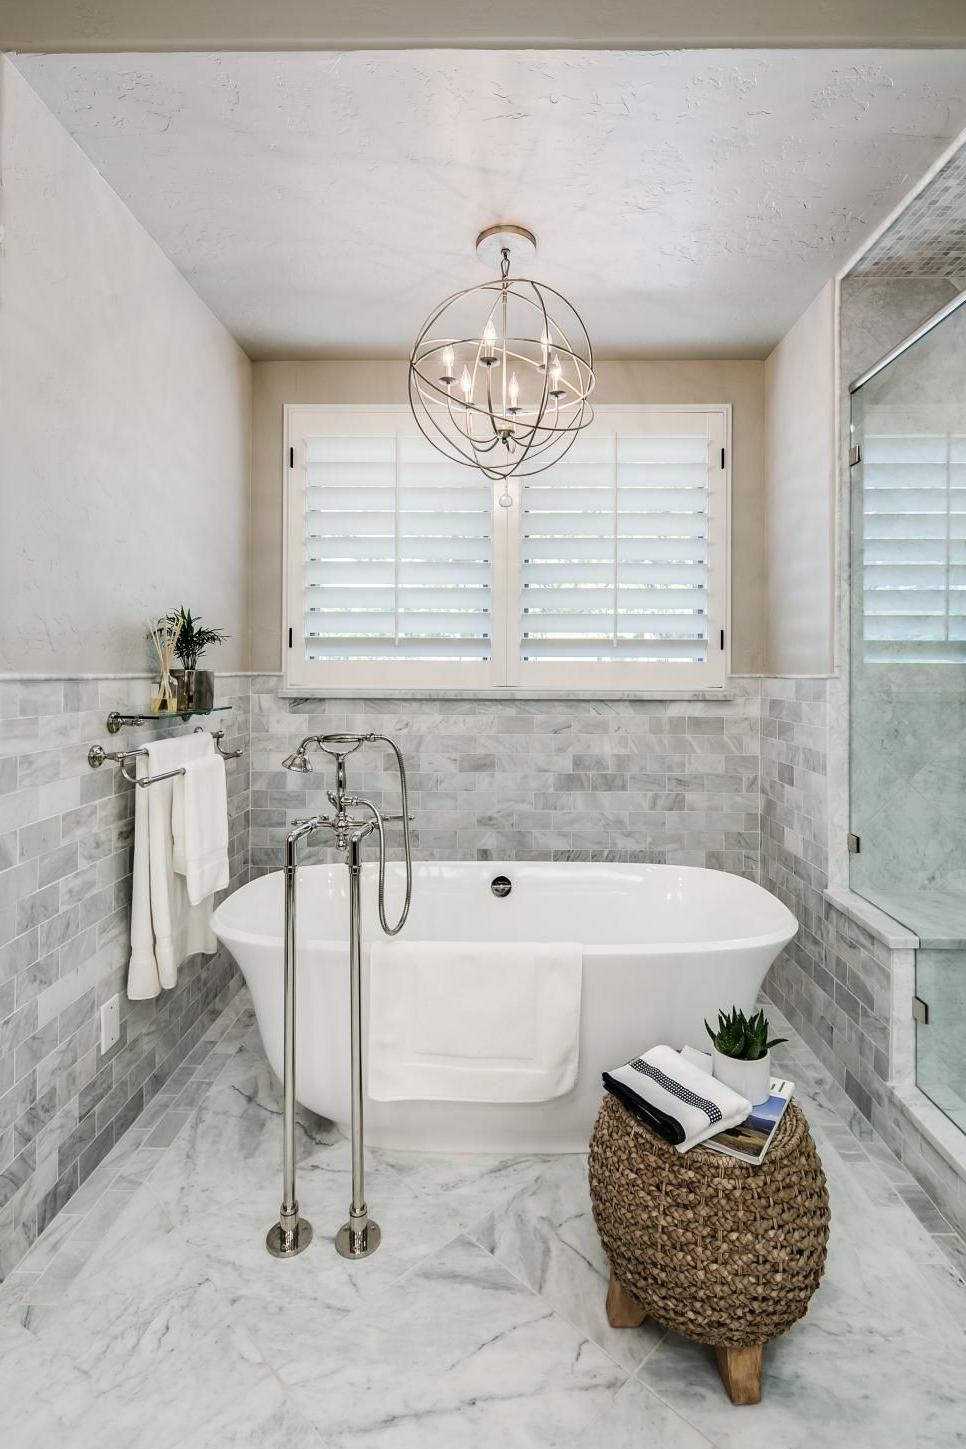 Bathroom Chandeliers Pertaining To Popular A Metal Orb Chandelier Is Centered Above The Freestanding Tub In